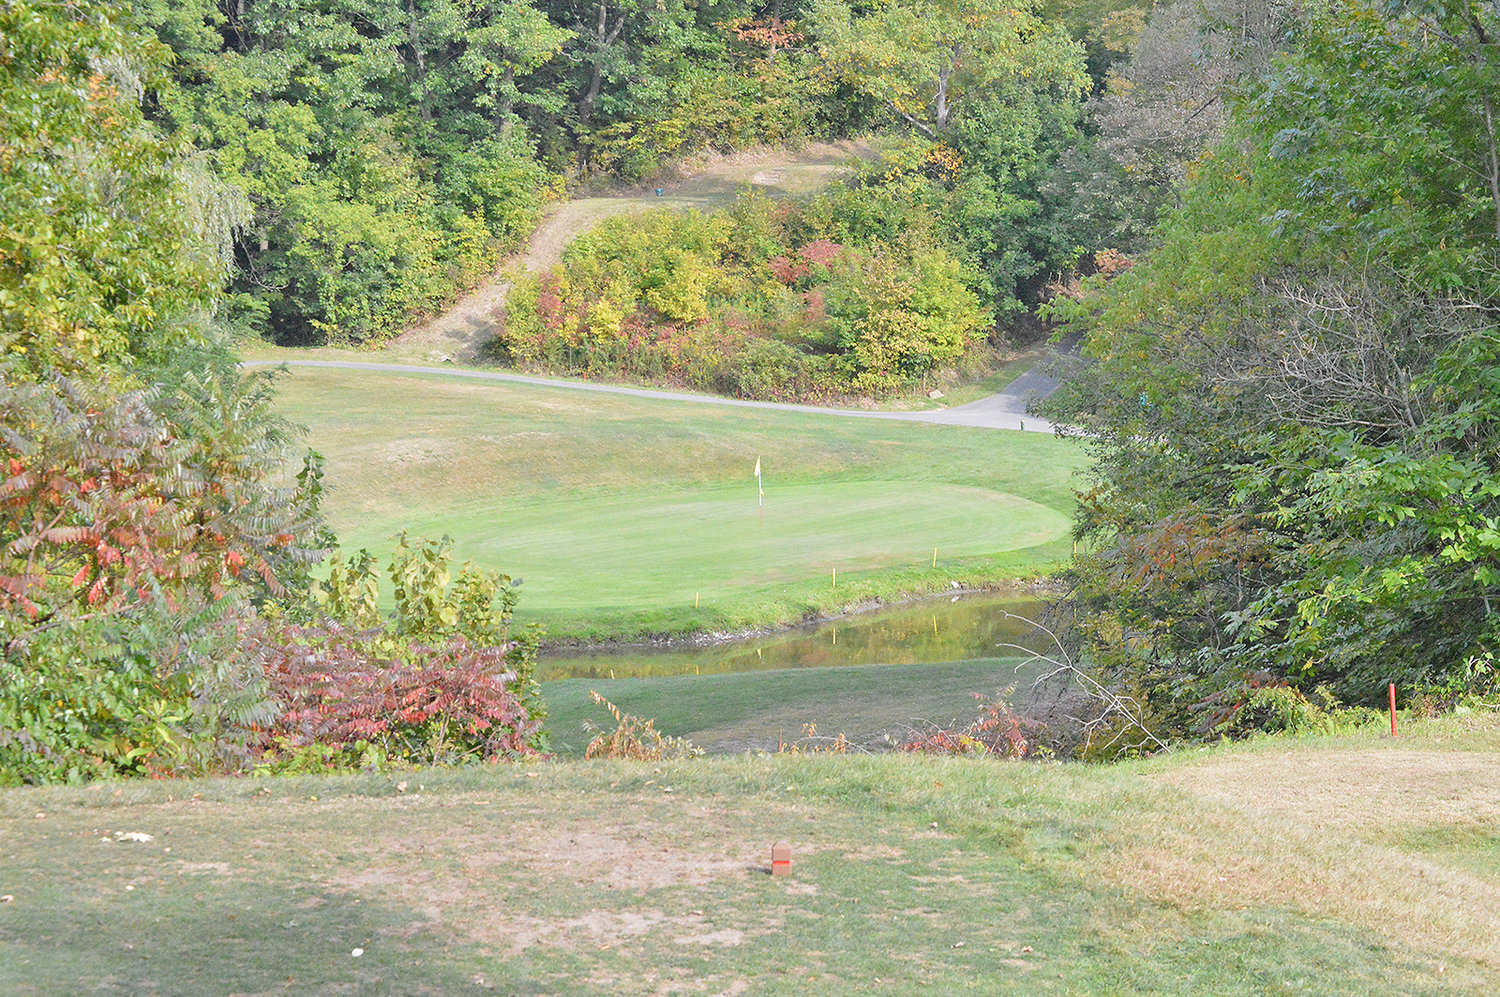 OVER THE WATER — A shot looking down onto the third green at MV Golf and Event Center on Thursday afternoon. This hole is the first par 3 of the course, making the player hit over a pond just in front of the green.